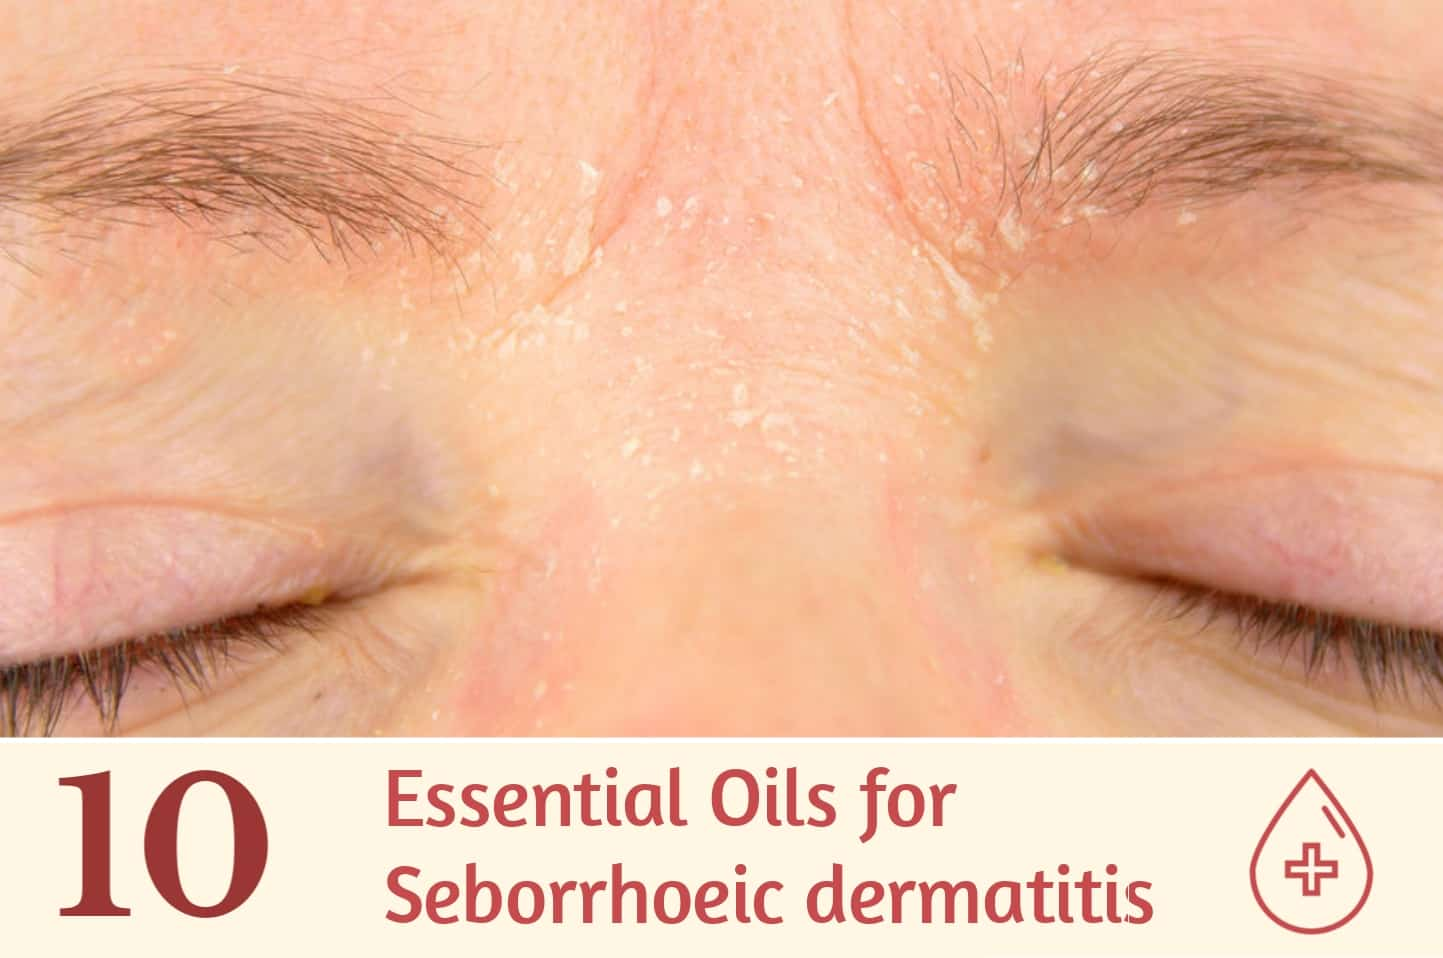 10 Essential Oils for Seborrheic Dermatitis | Essential Oil